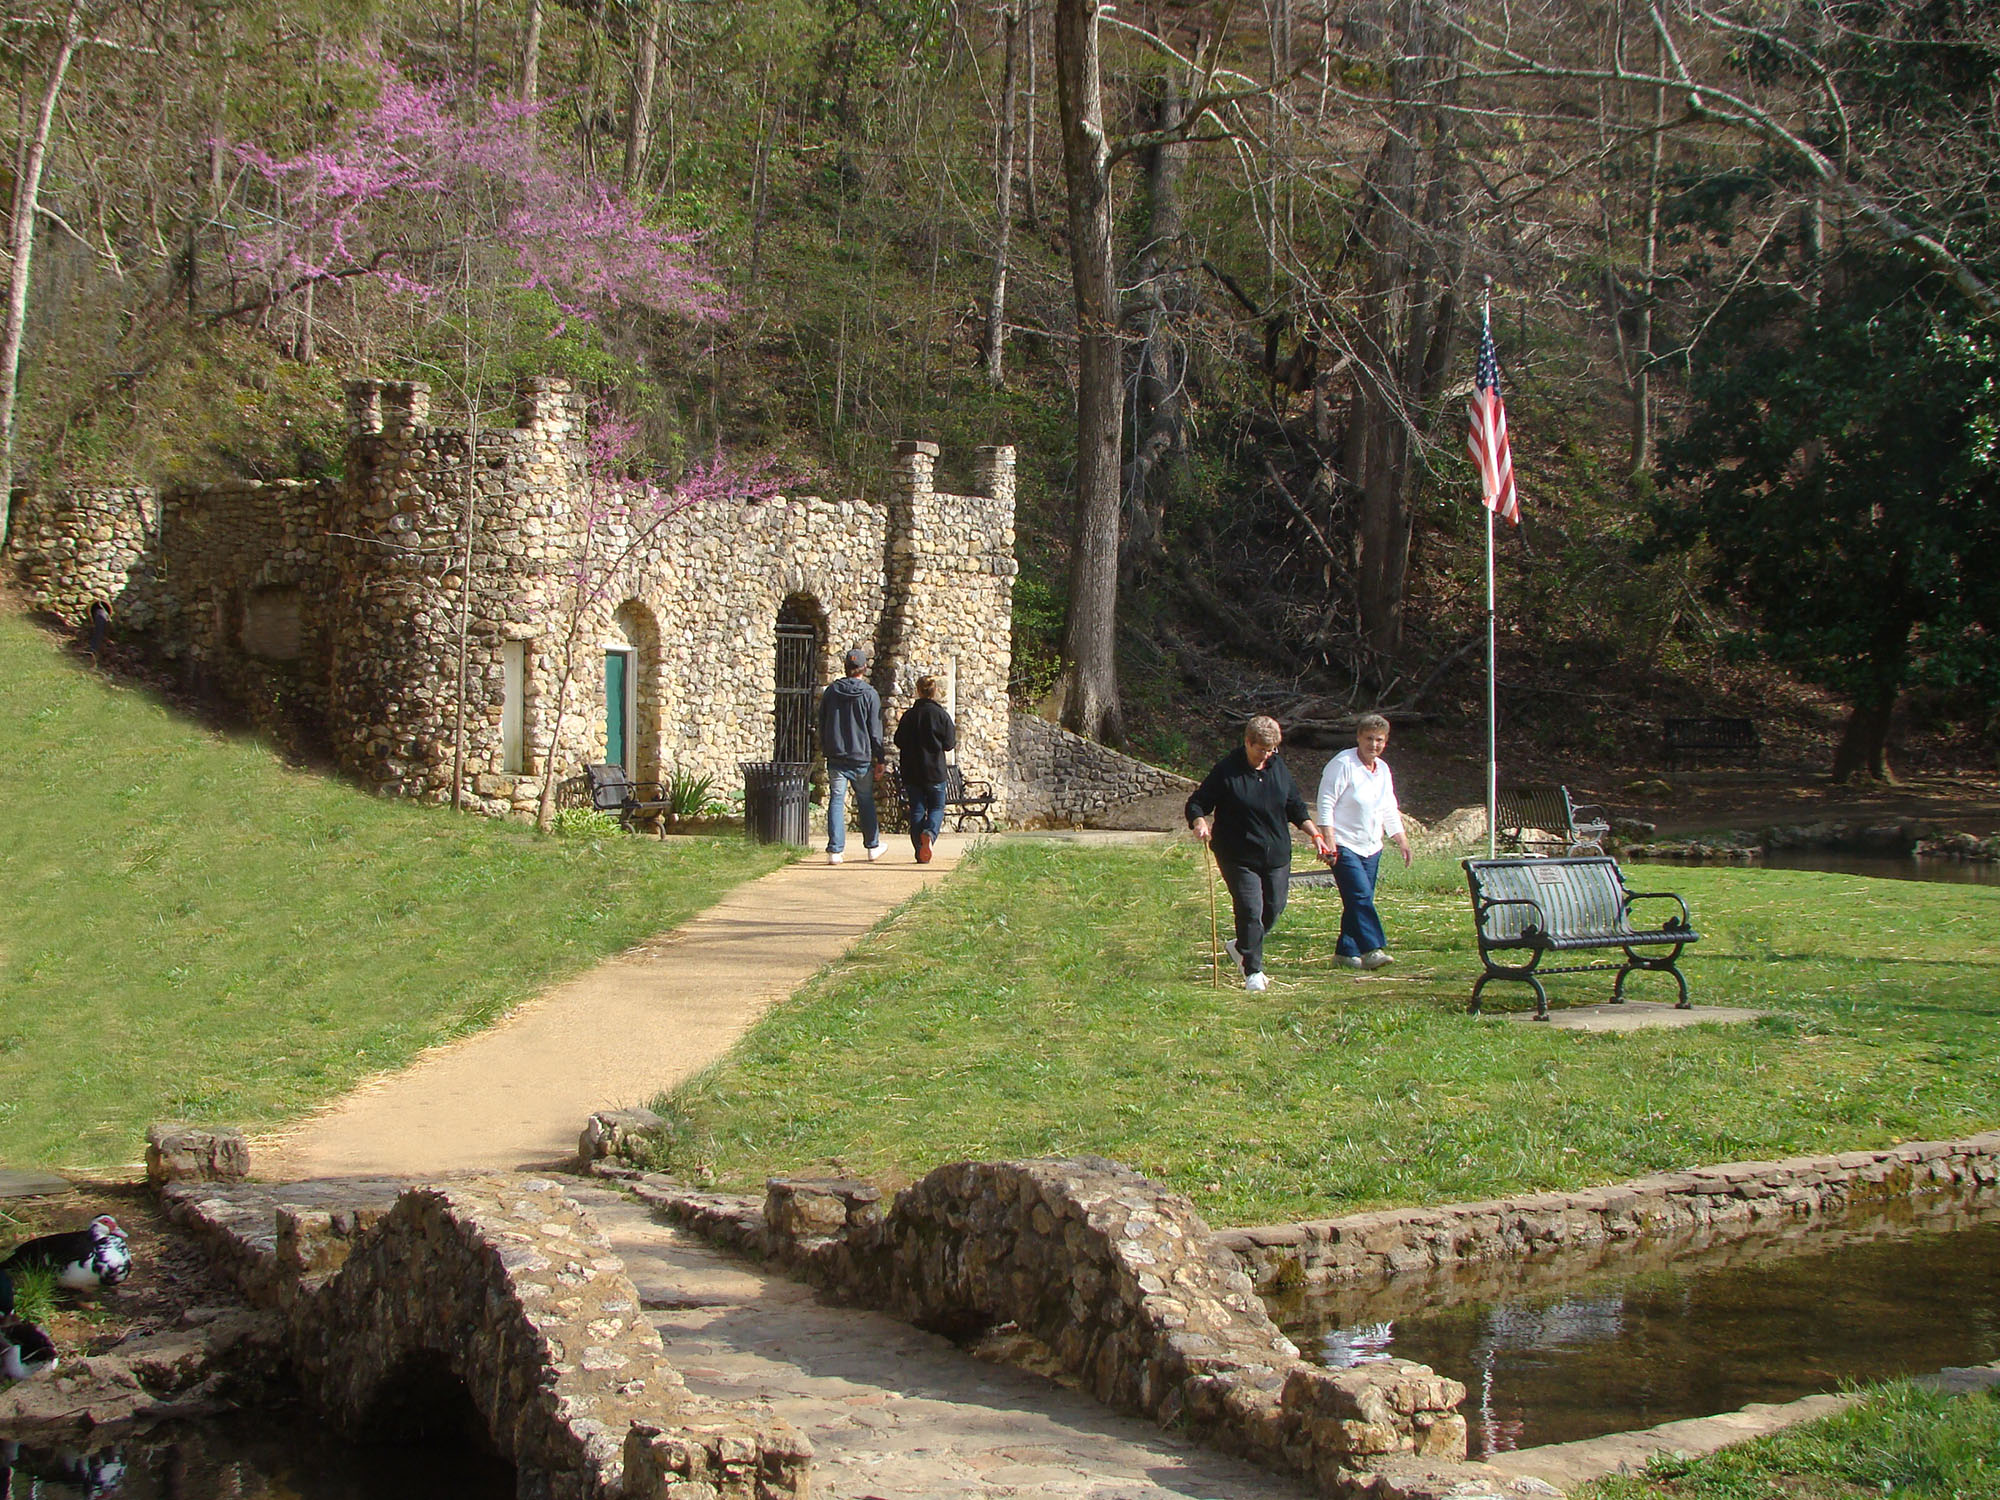 Rolater Park in Cave Spring, Georgia